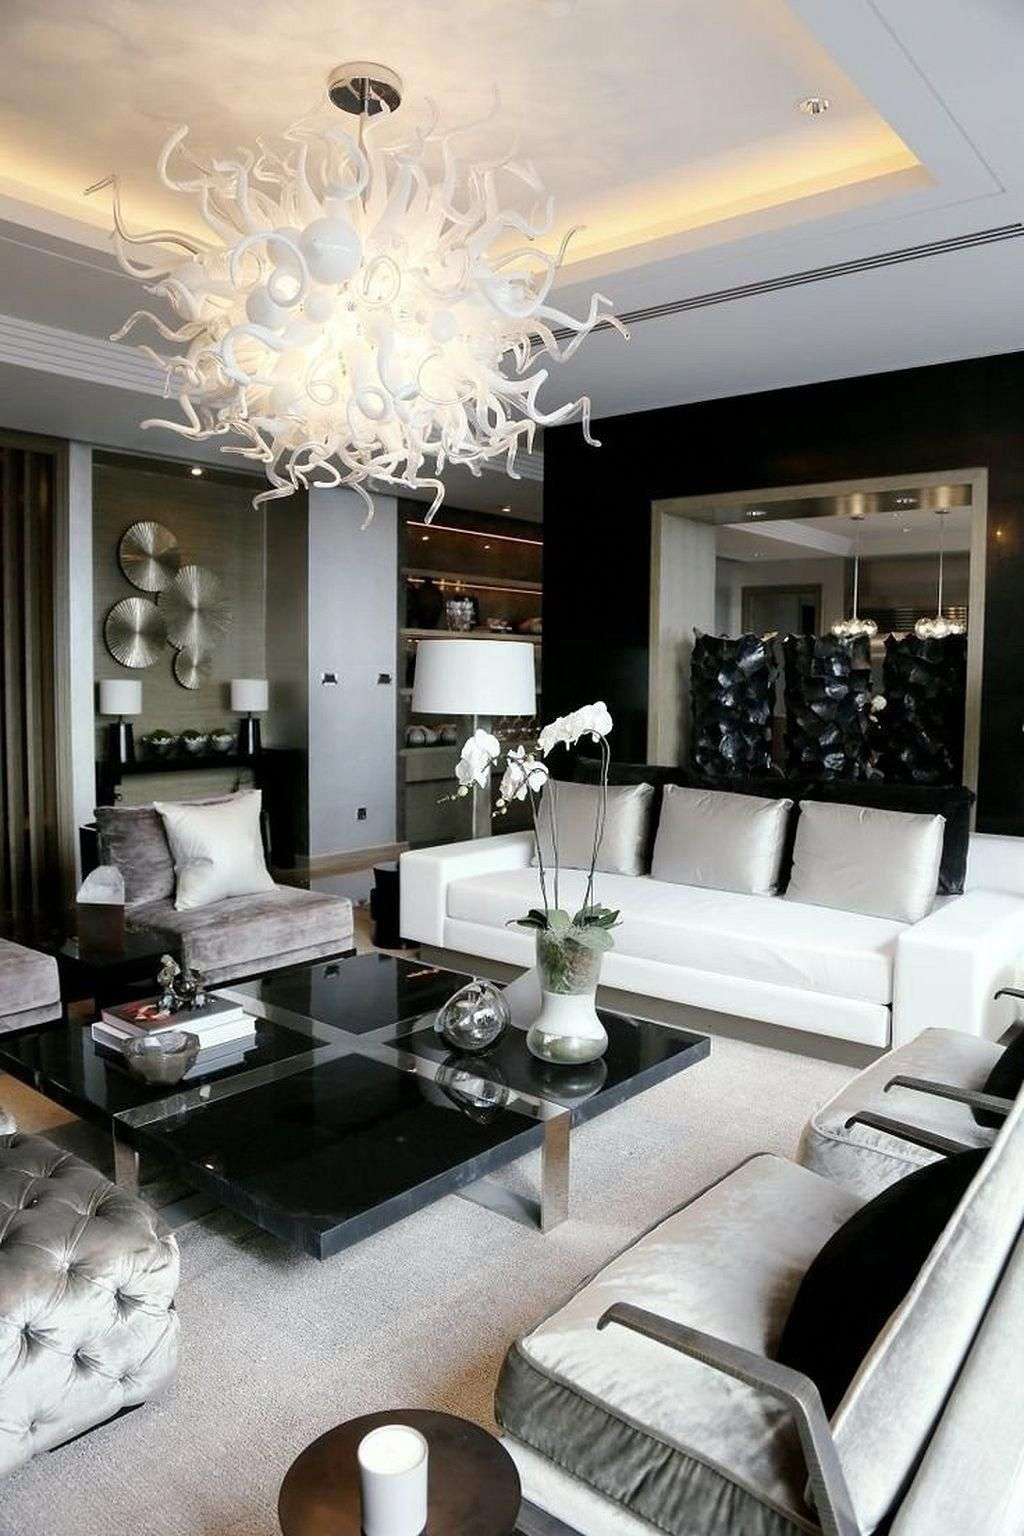 Modern And Glam Living Room Decorating Ideas 16 Livingroomdecorations Modern White Living Room Silver Living Room White Living Room Decor #white #living #room #accessories